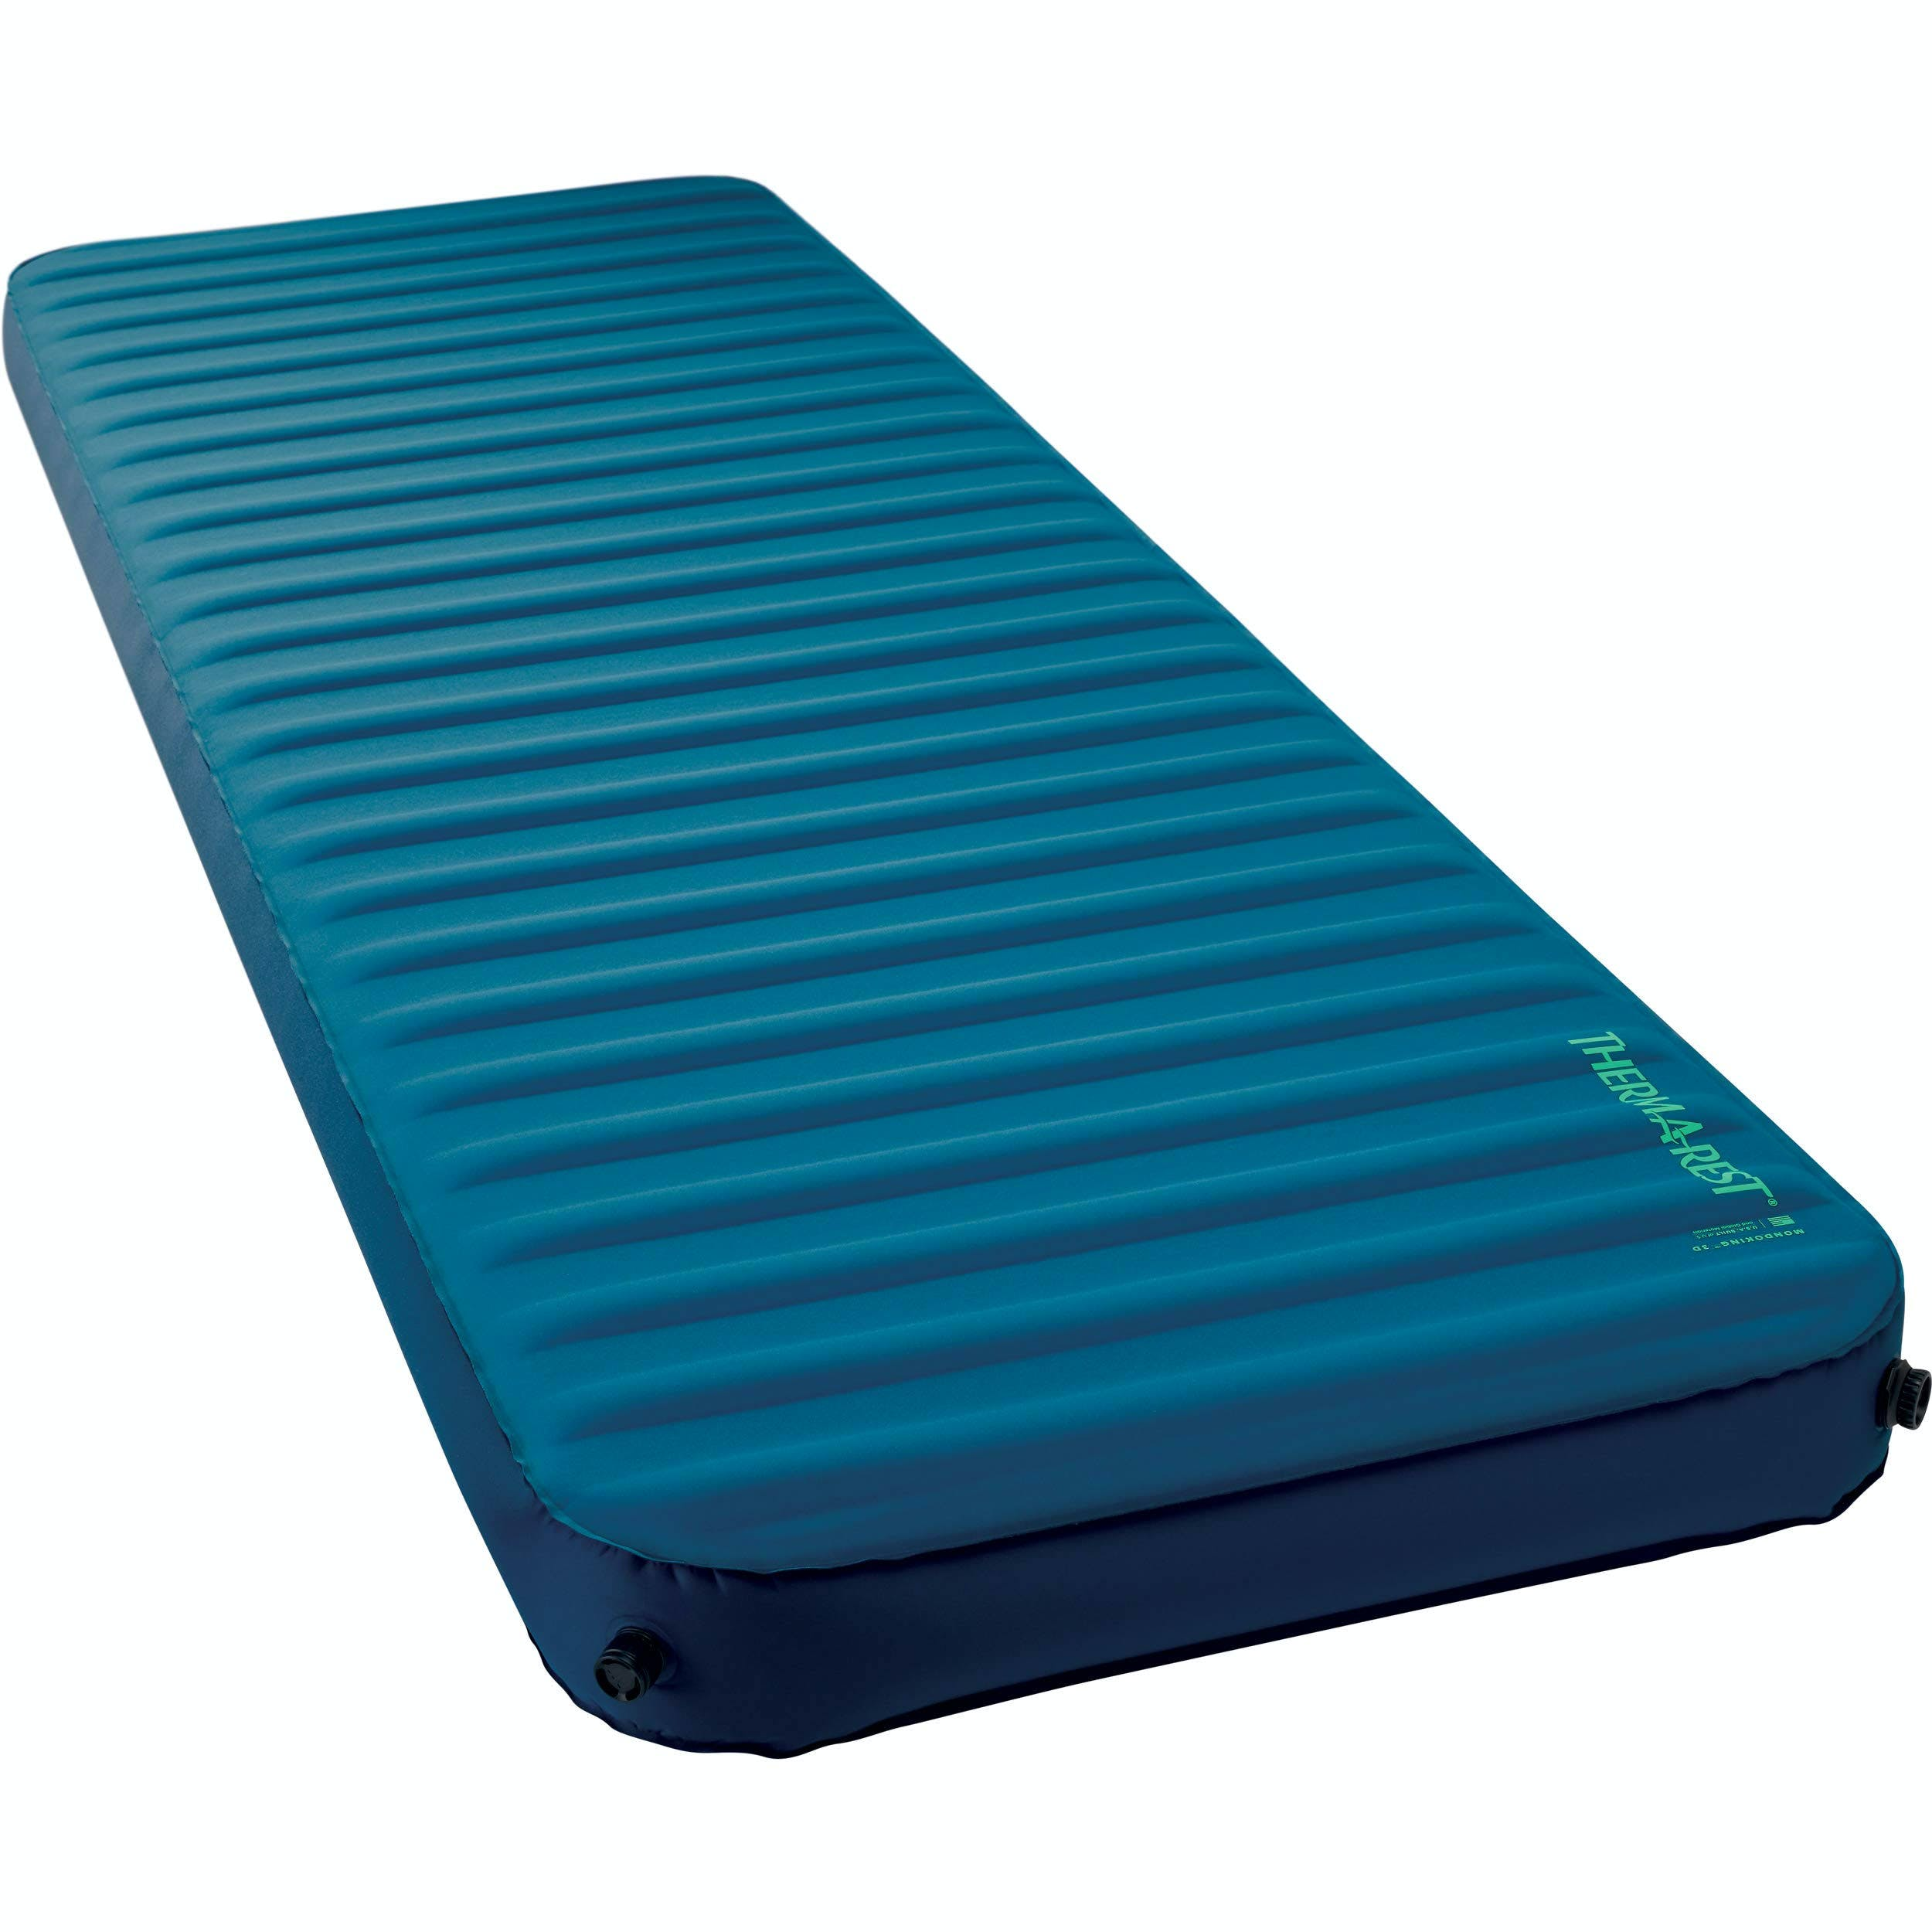 Therm-a-Rest MondoKing 3D Sleeping Pad, Large